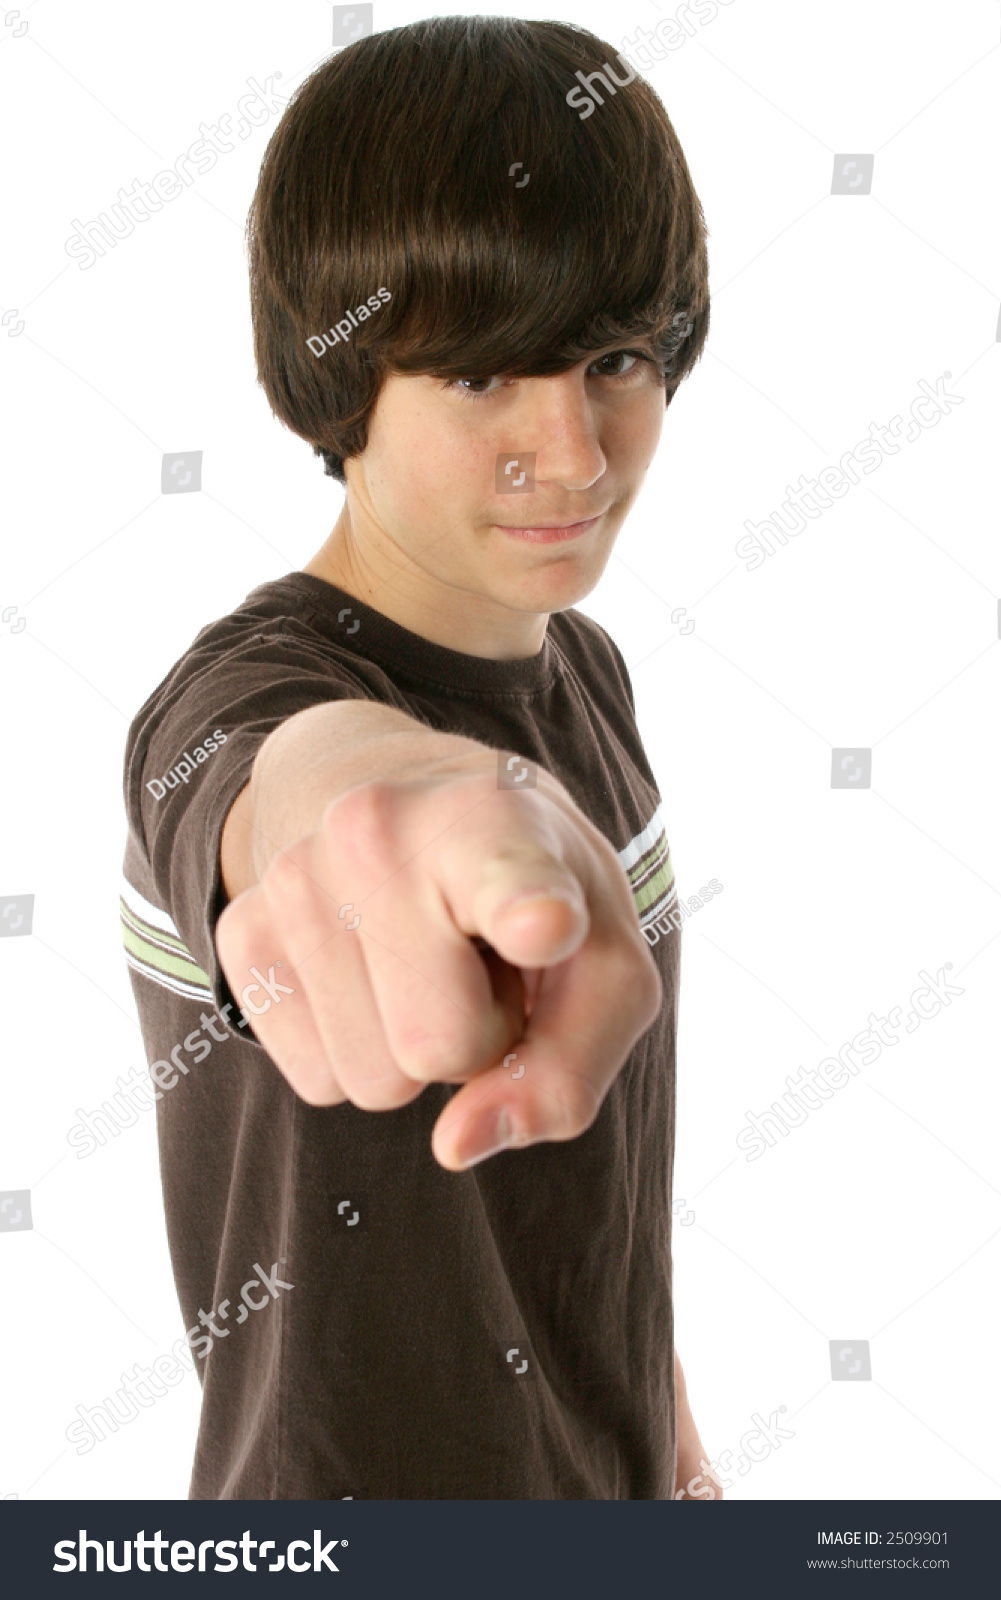 Cute 13 Year Old Boy Pointing Finger. White Background